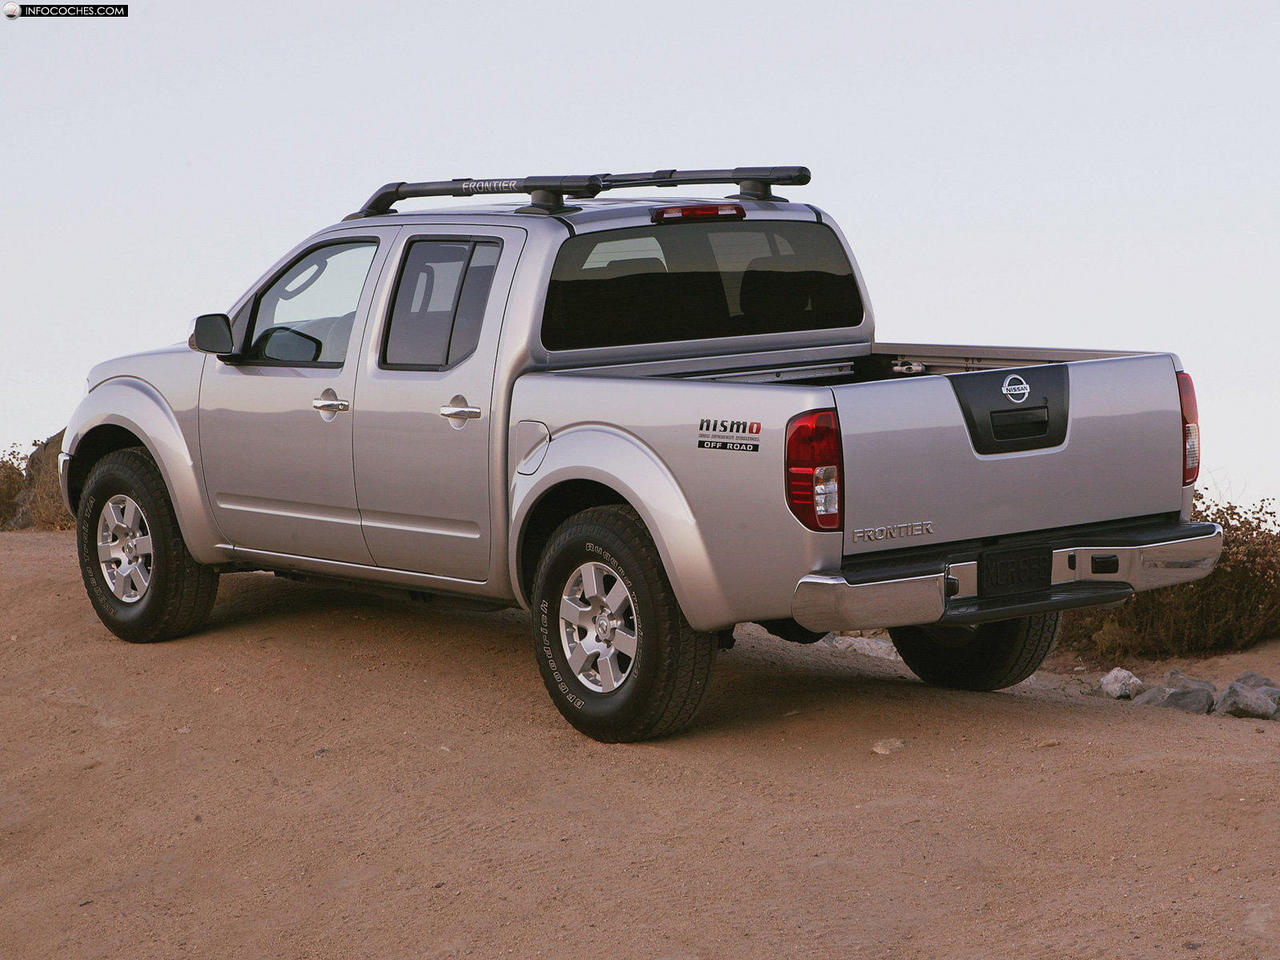 2010 nissan frontier lifted related keywords suggestions 2010 2005 nissan frontier image 10 vanachro Image collections